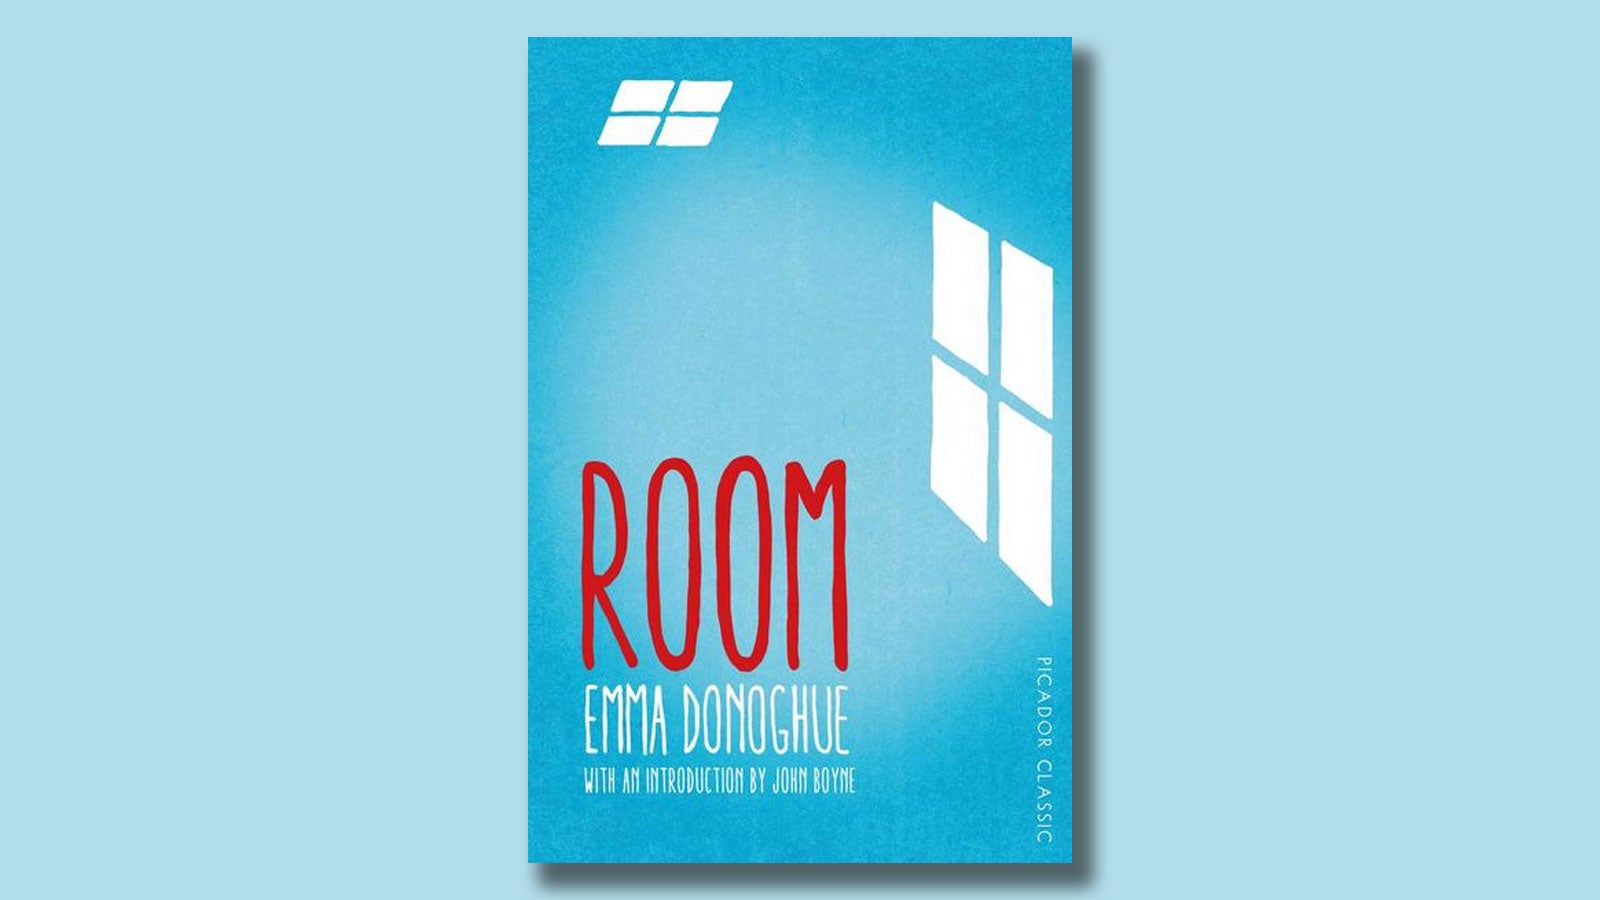 Book jacket for Room by Emma Donoghue on a light blue background